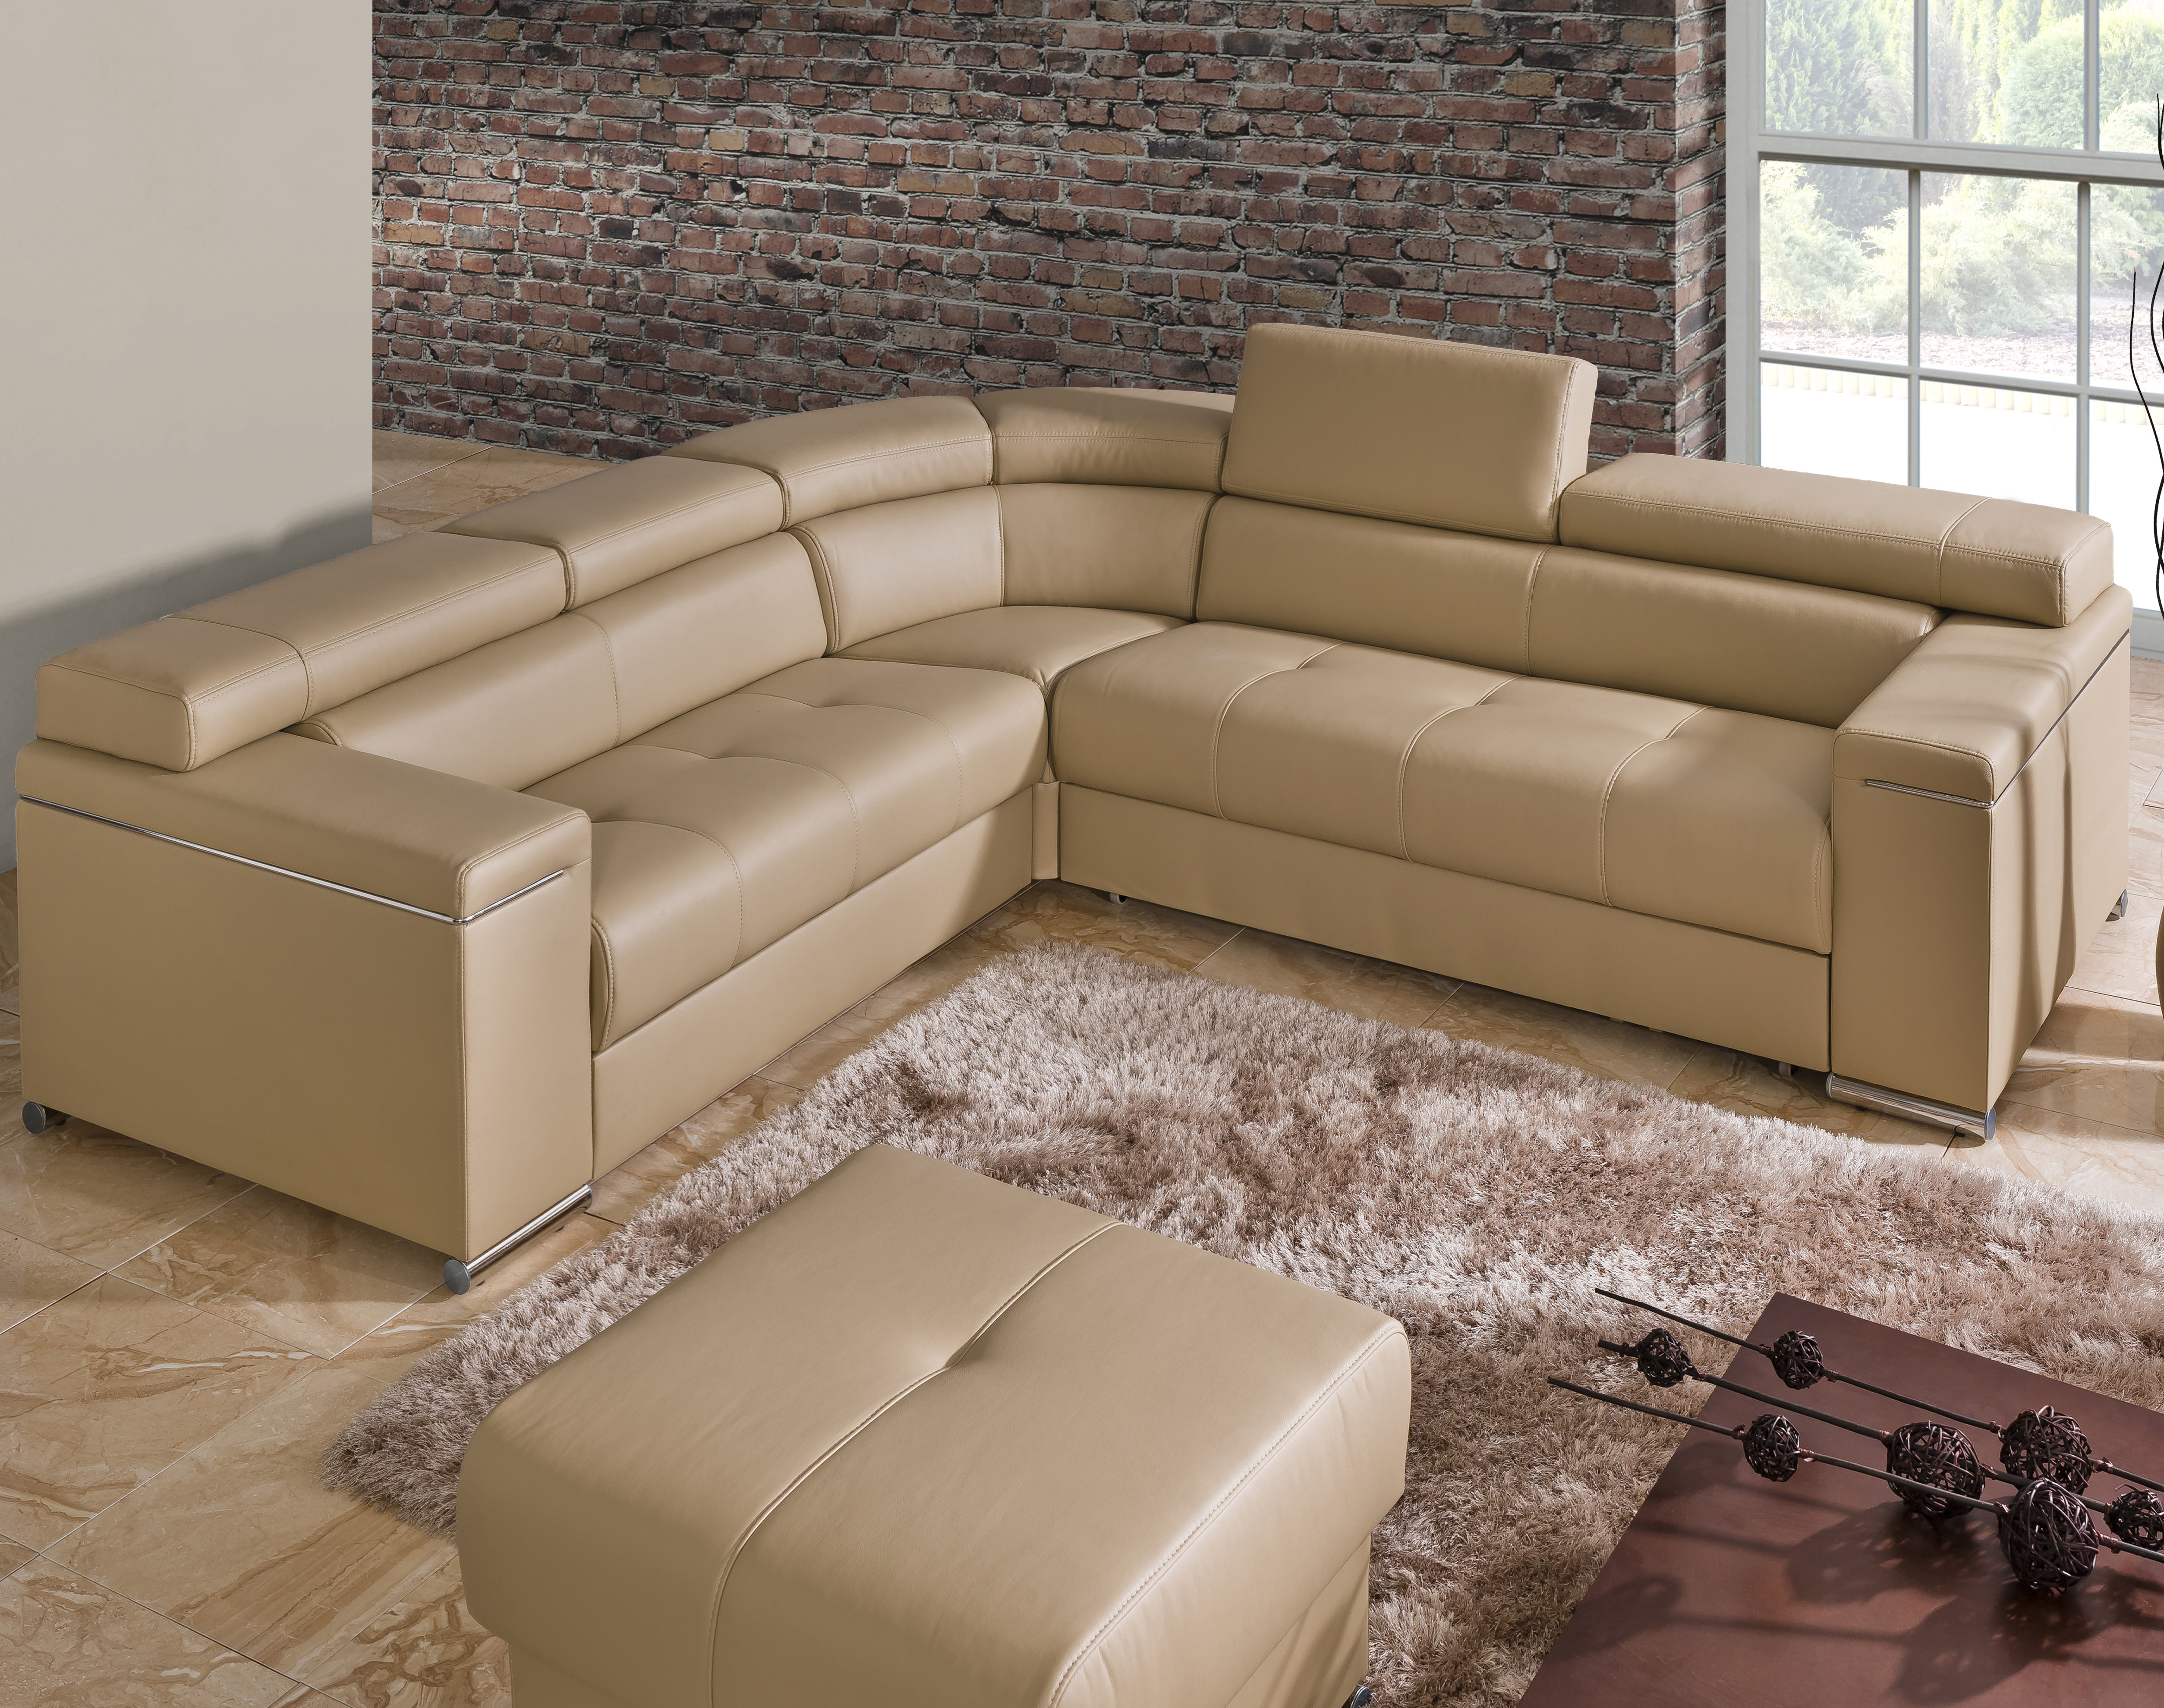 Blaine 4 Piece Sectionals Inside Popular The Collection German Furniture Sleeper Sectional (View 16 of 20)